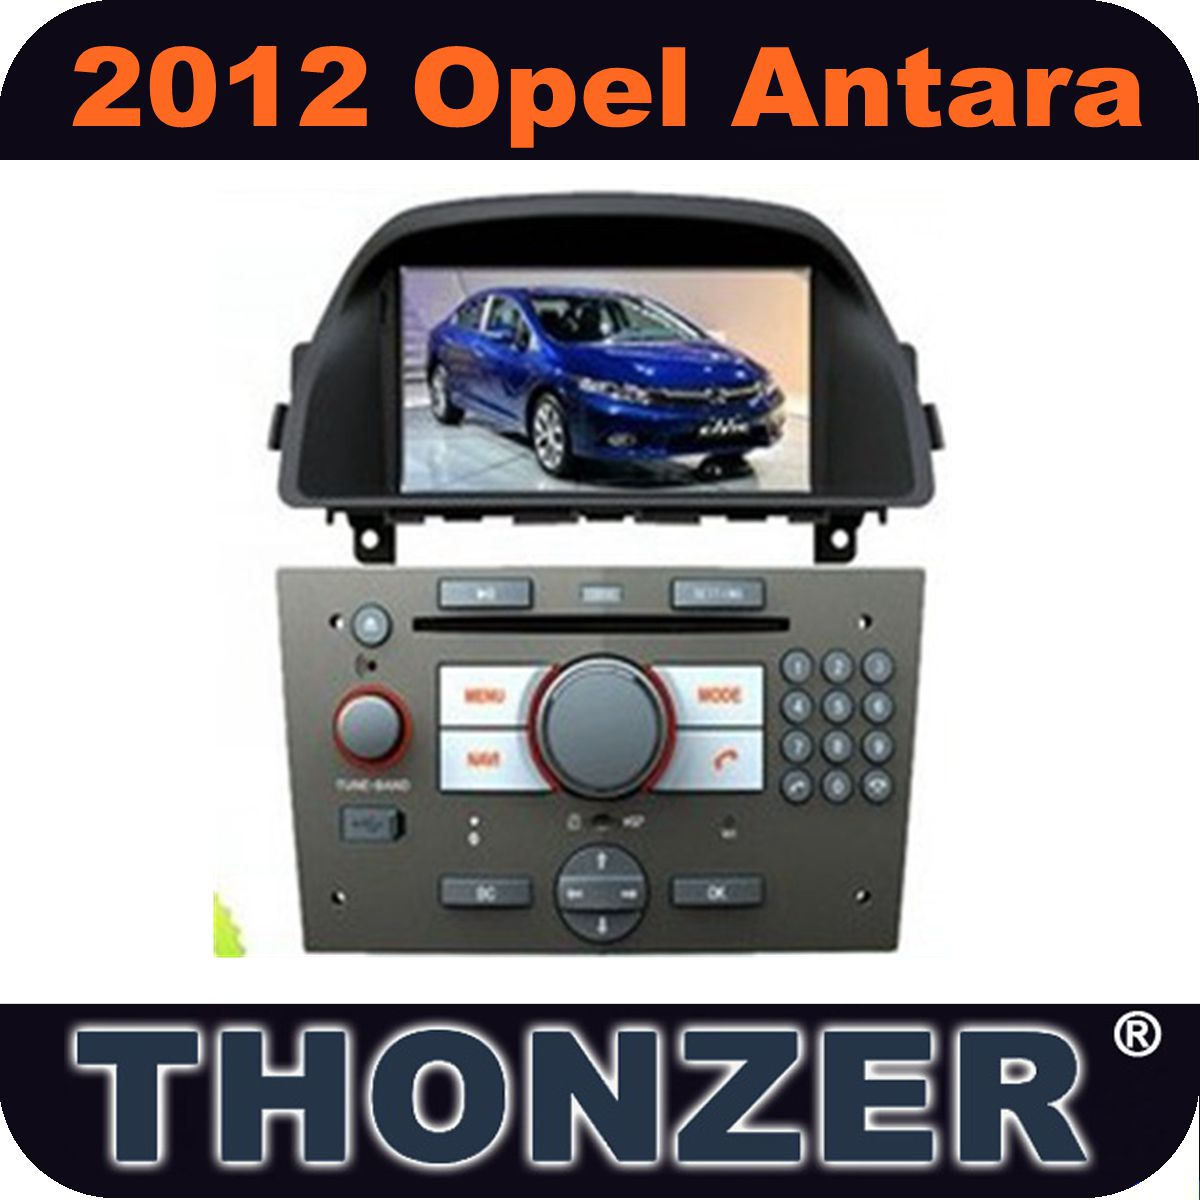 auto lettore dvd con gps per opel antara 2012 con radio bluetooth ipod 6 cd disco pip video. Black Bedroom Furniture Sets. Home Design Ideas